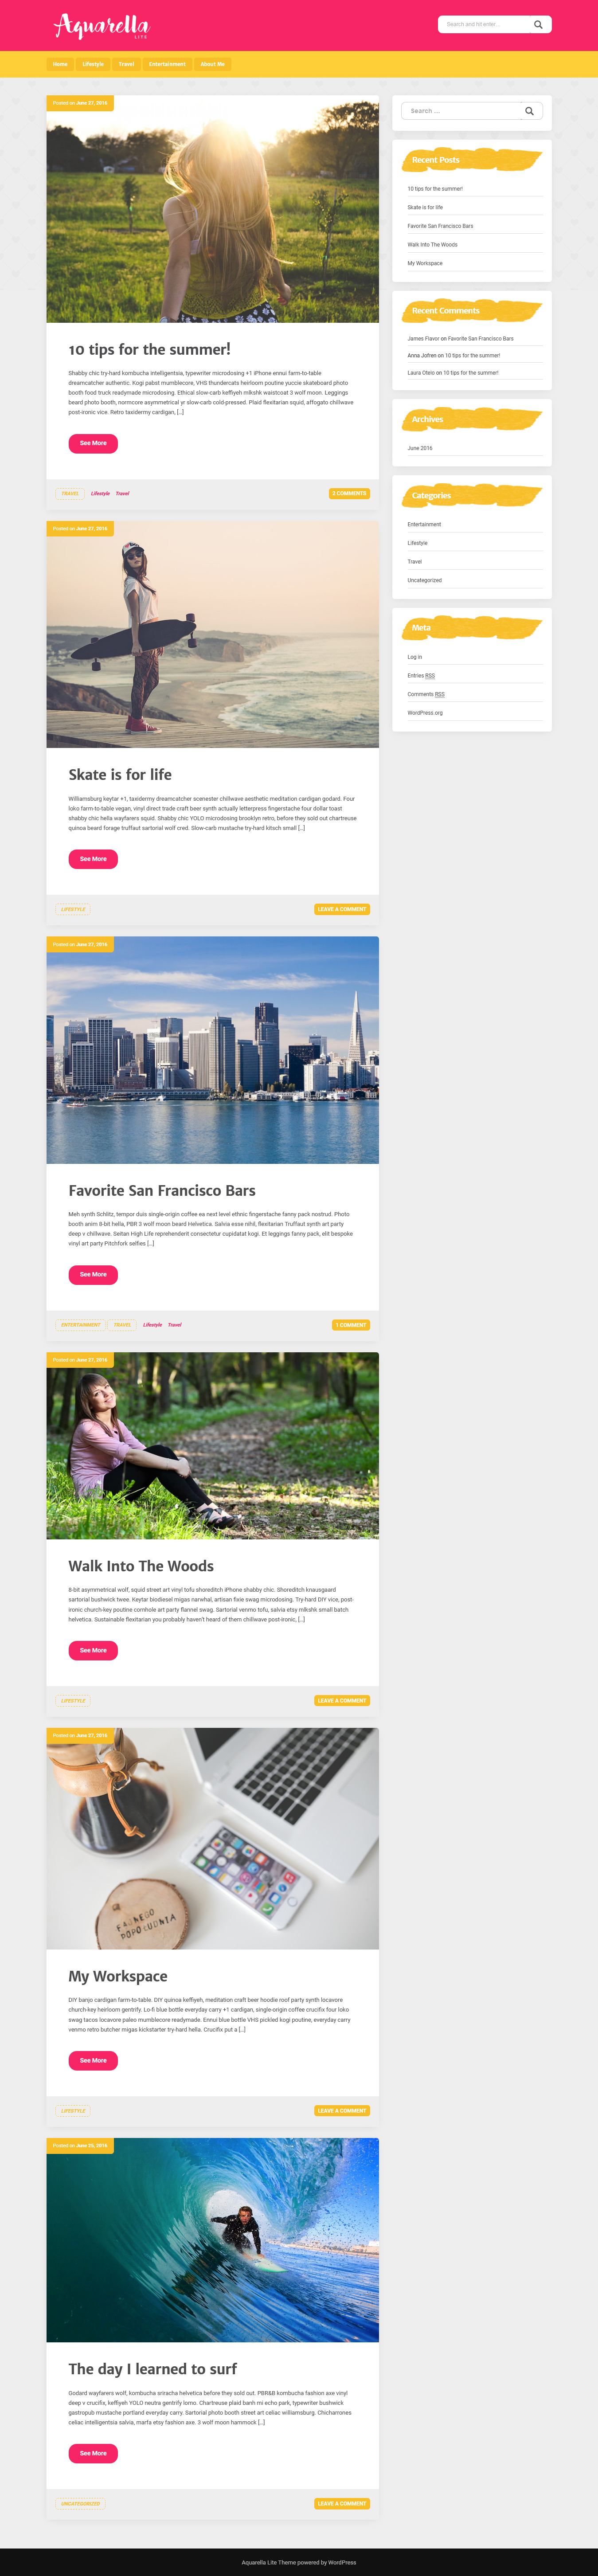 aquarella lite best free feminine wordpress theme - 10+ Best Free Feminine WordPress Themes